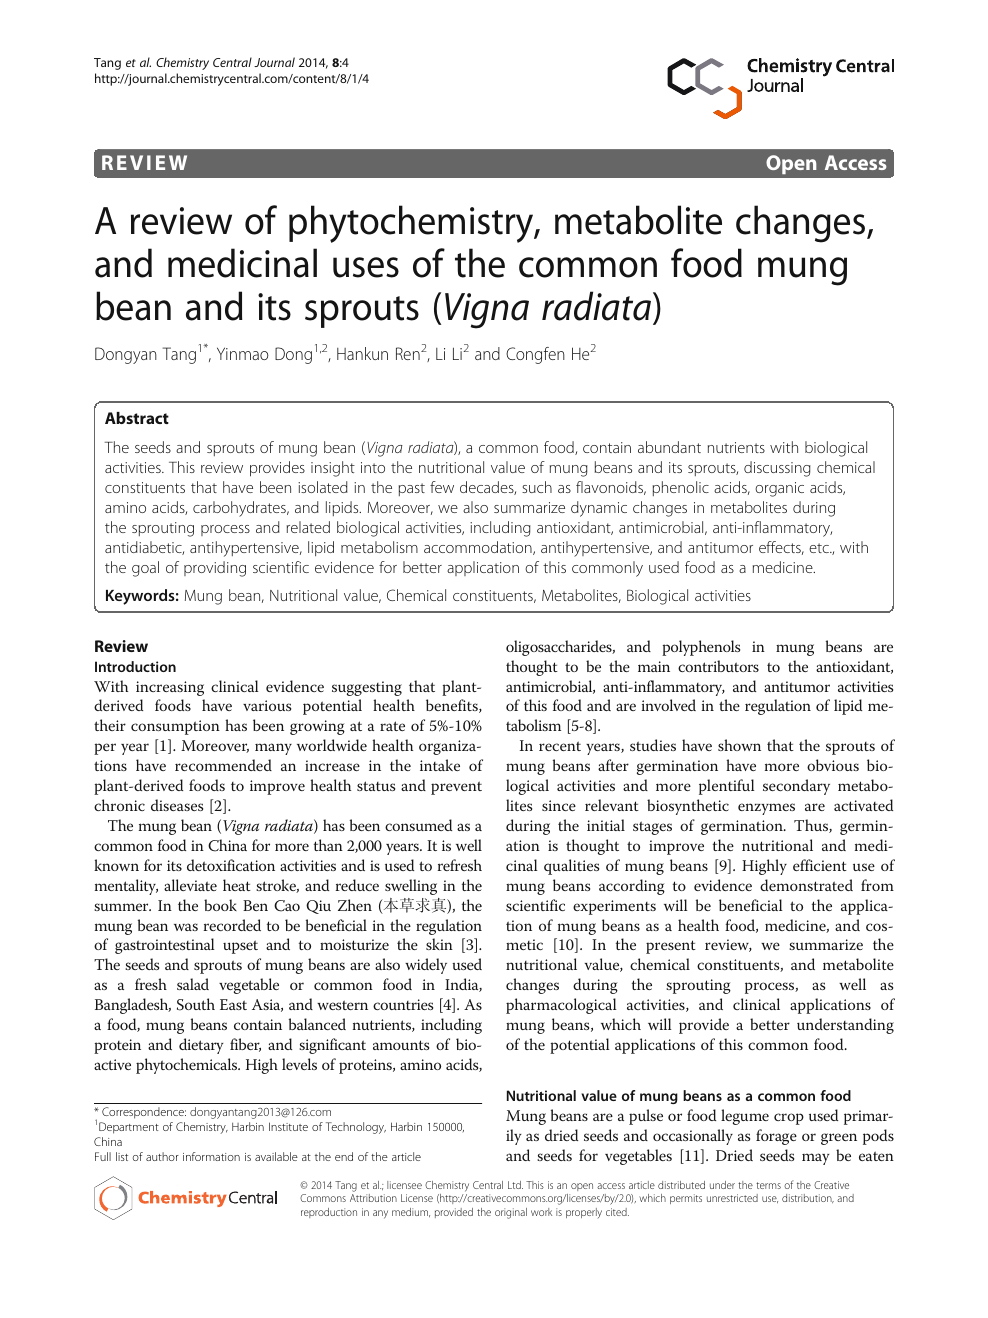 A review of phytochemistry, metabolite changes, and medicinal uses